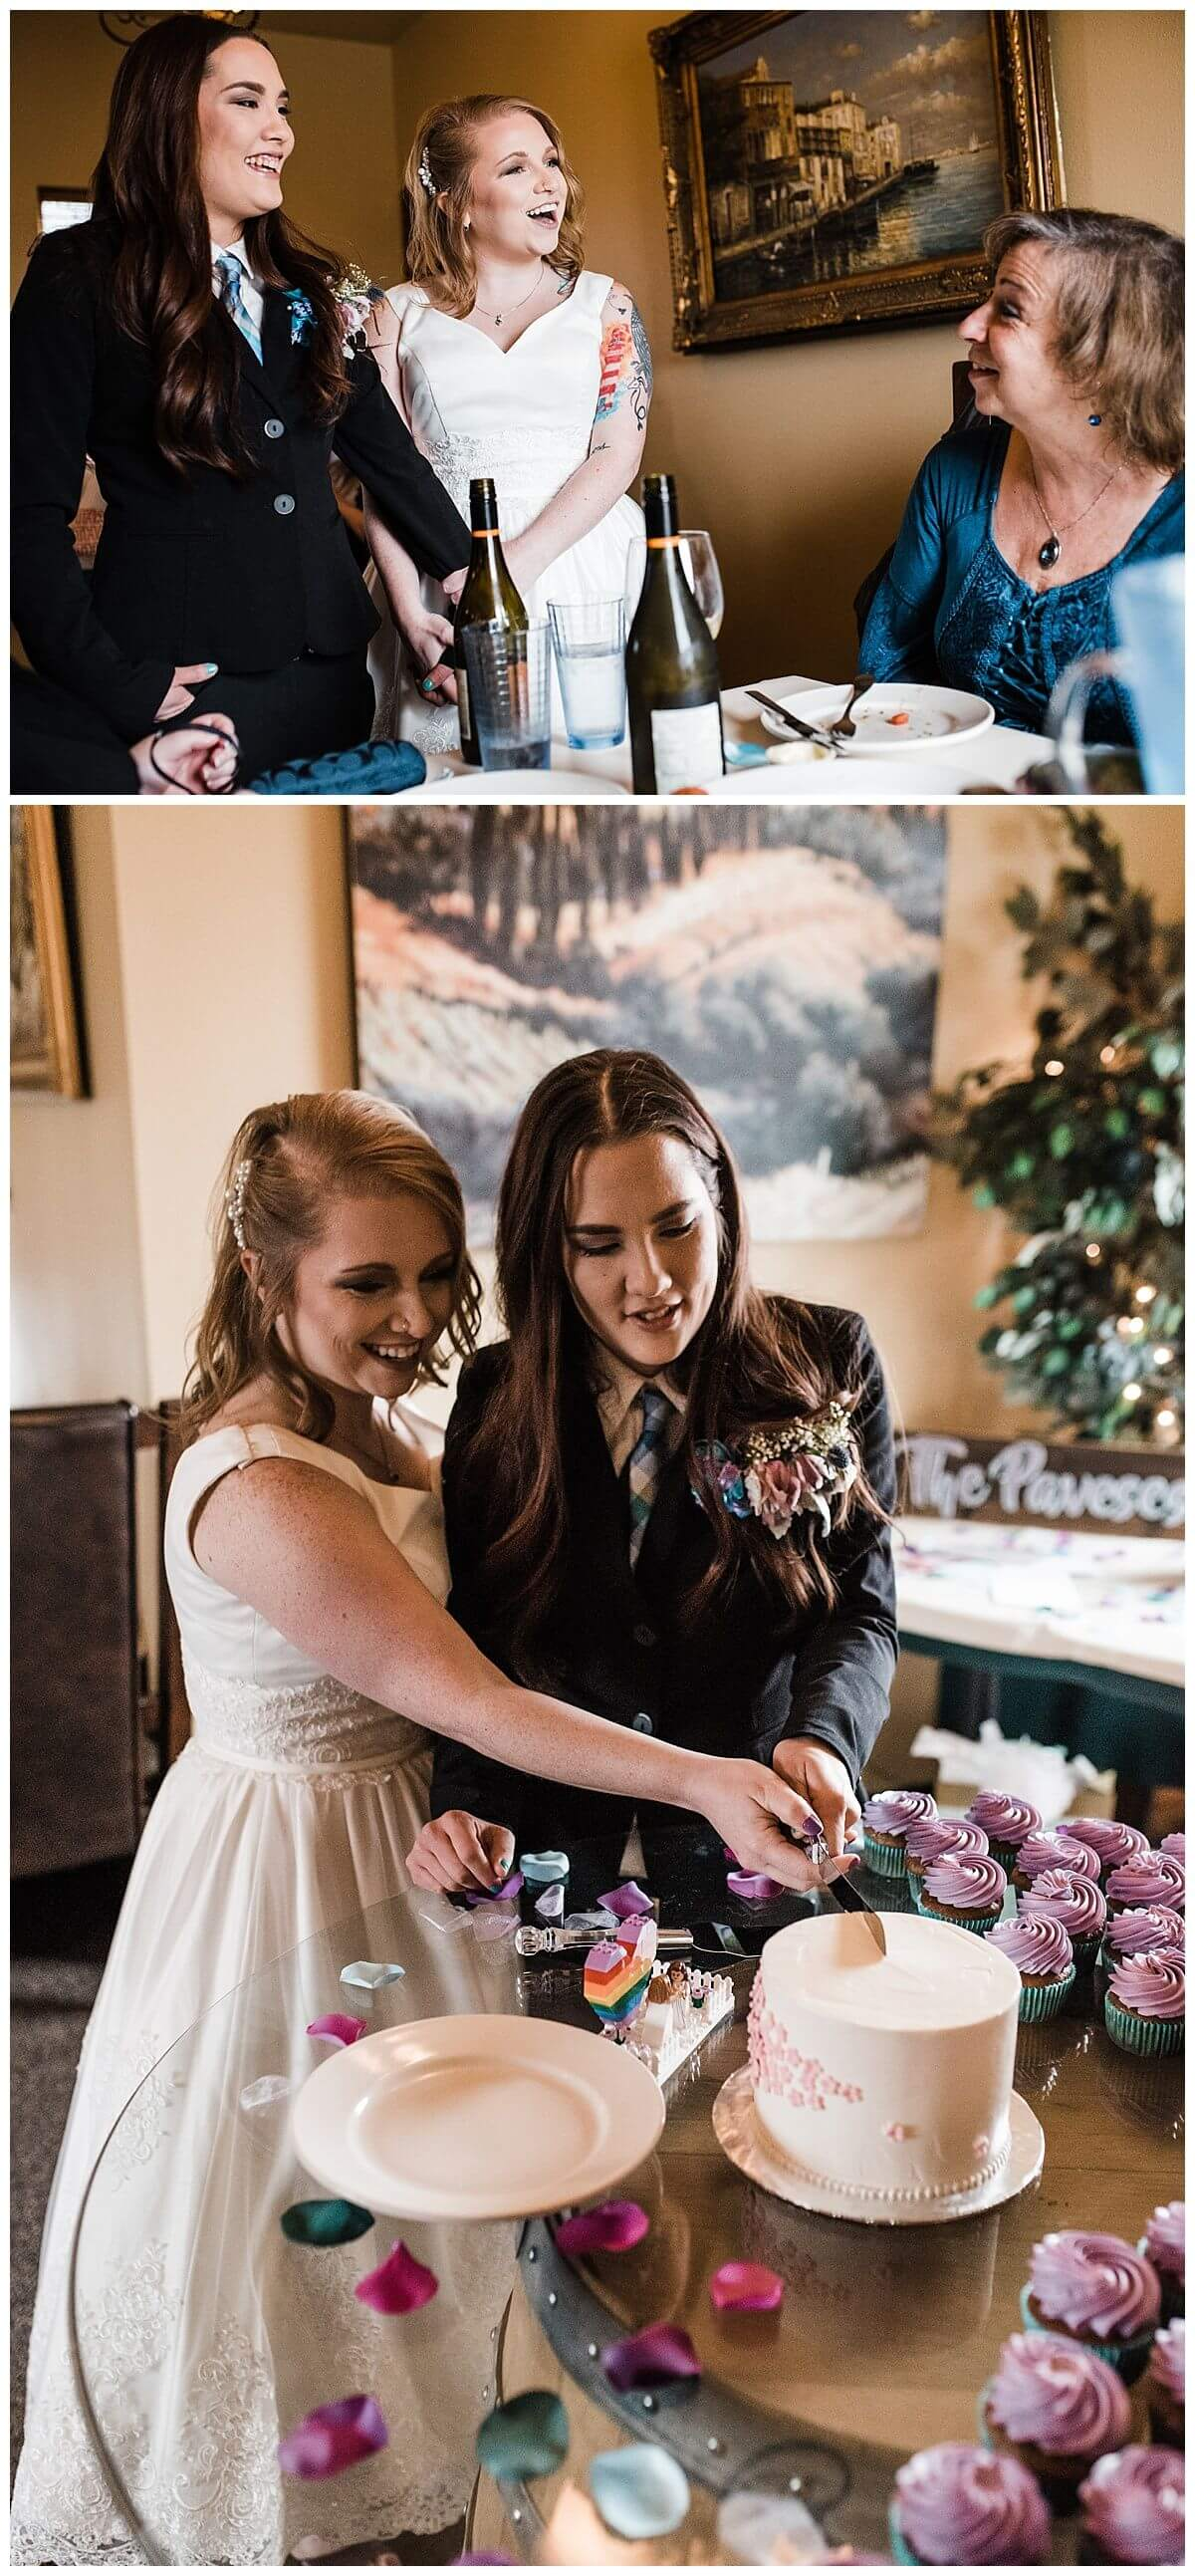 S Photography,adventure,bella italia,bride,kennewick,lesbian,lgbt,oregon,pacific northwest,photographer,same sex,washington,wedding,winter,